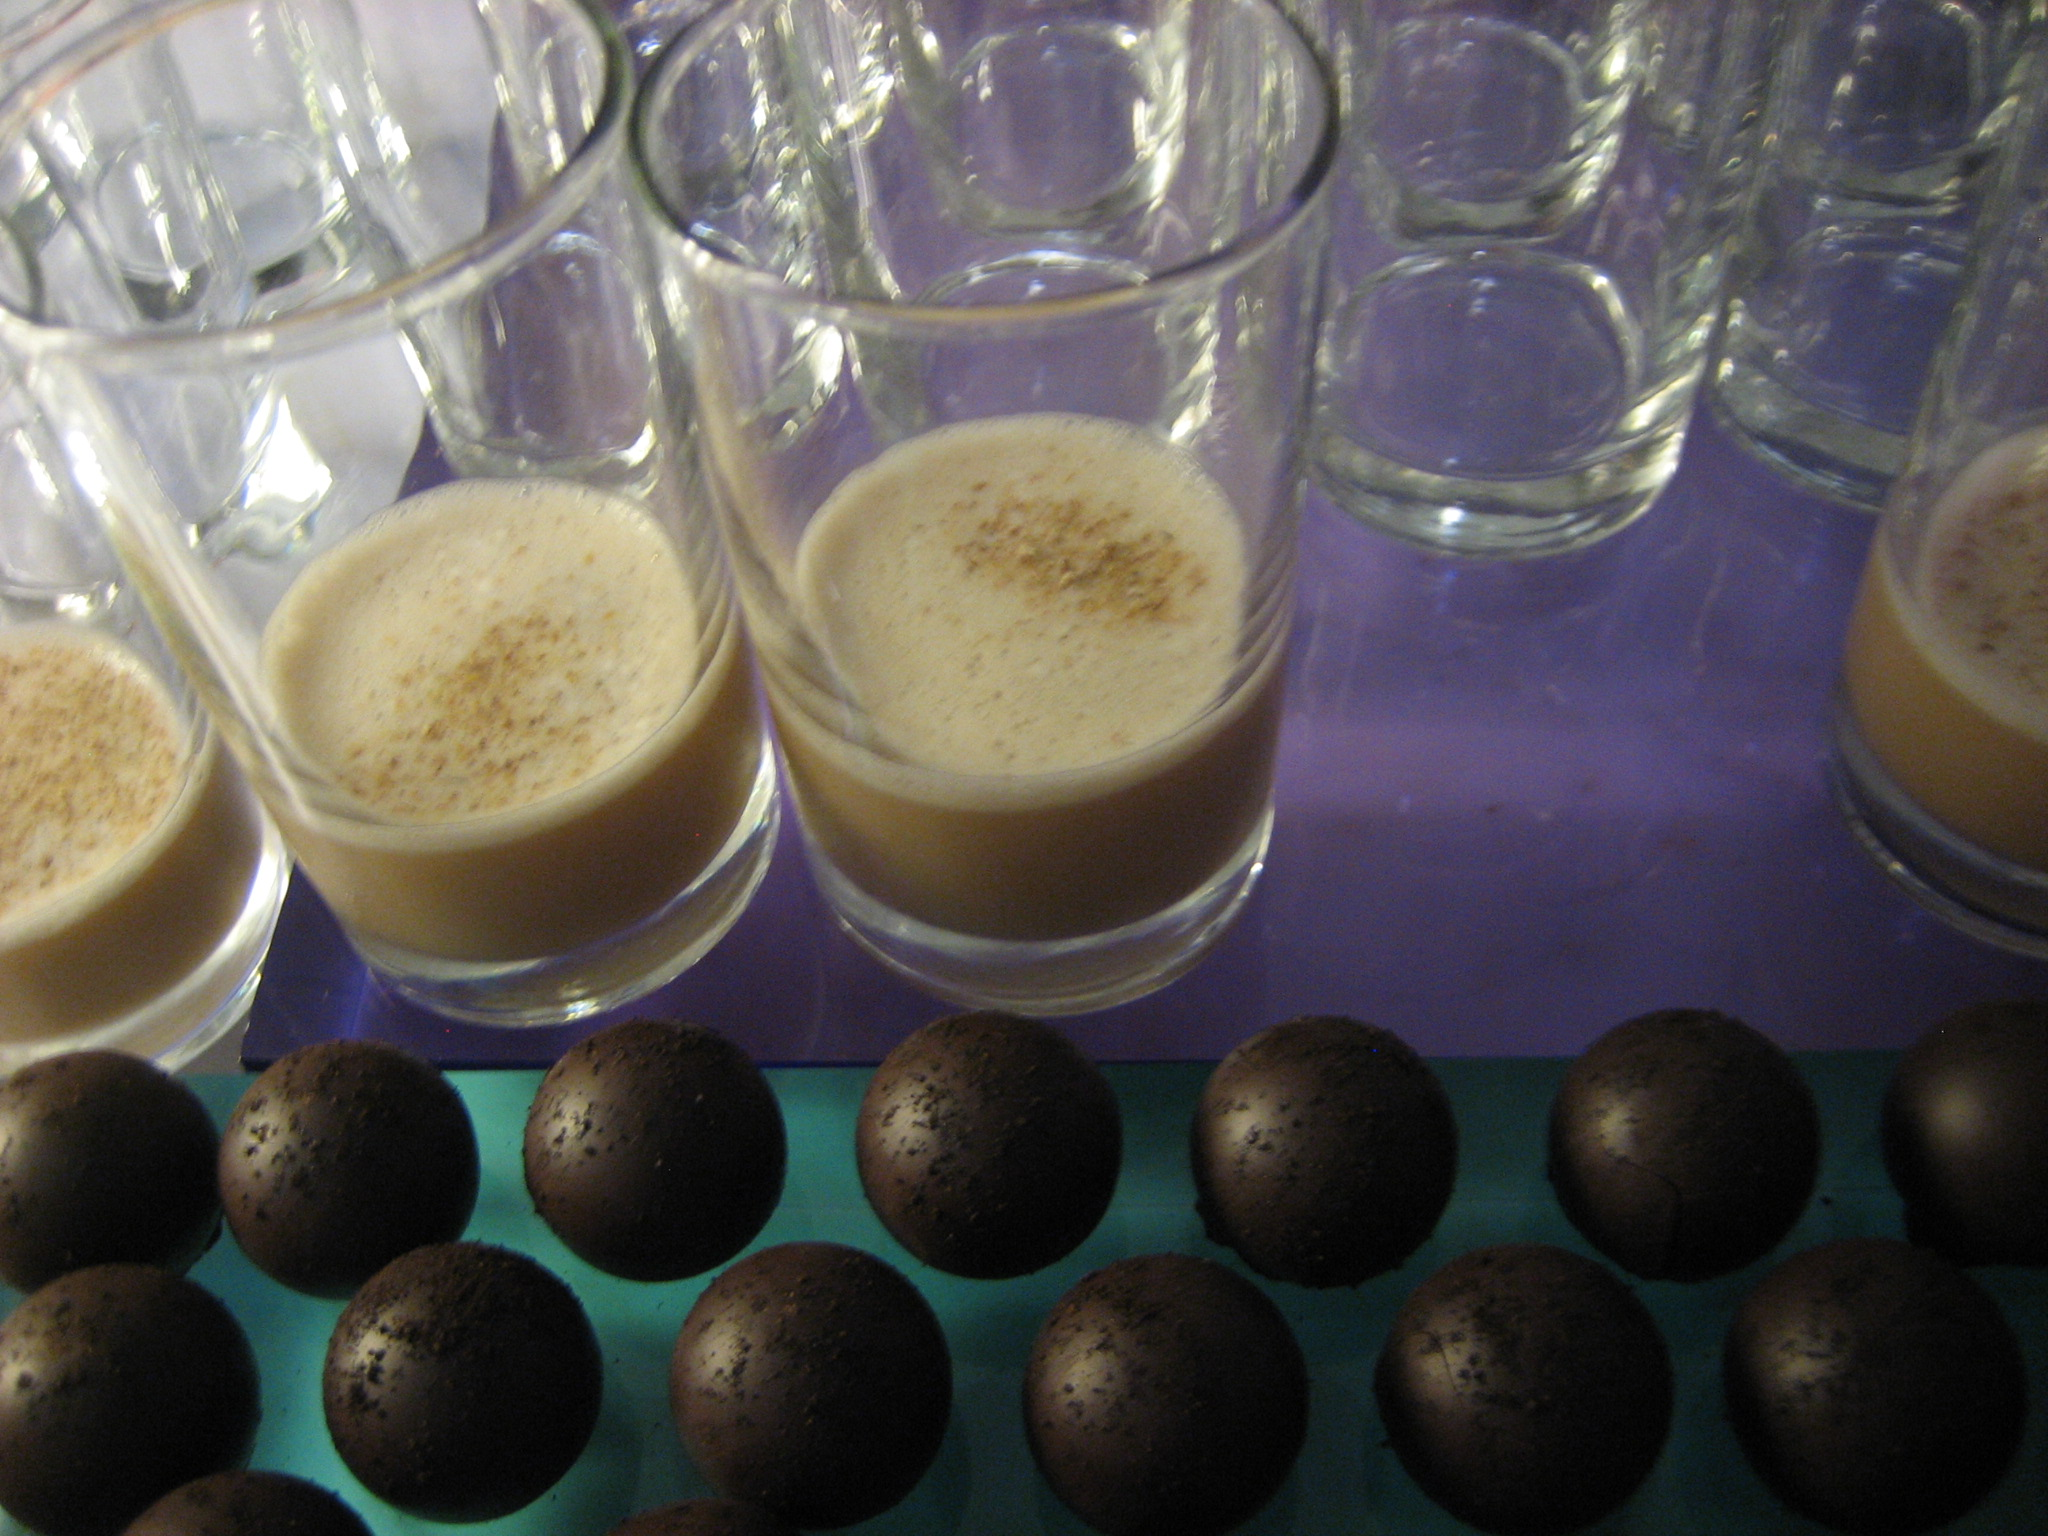 Vosges' Jazz Truffle was copacetic with Kinder's Coffee Cocktail